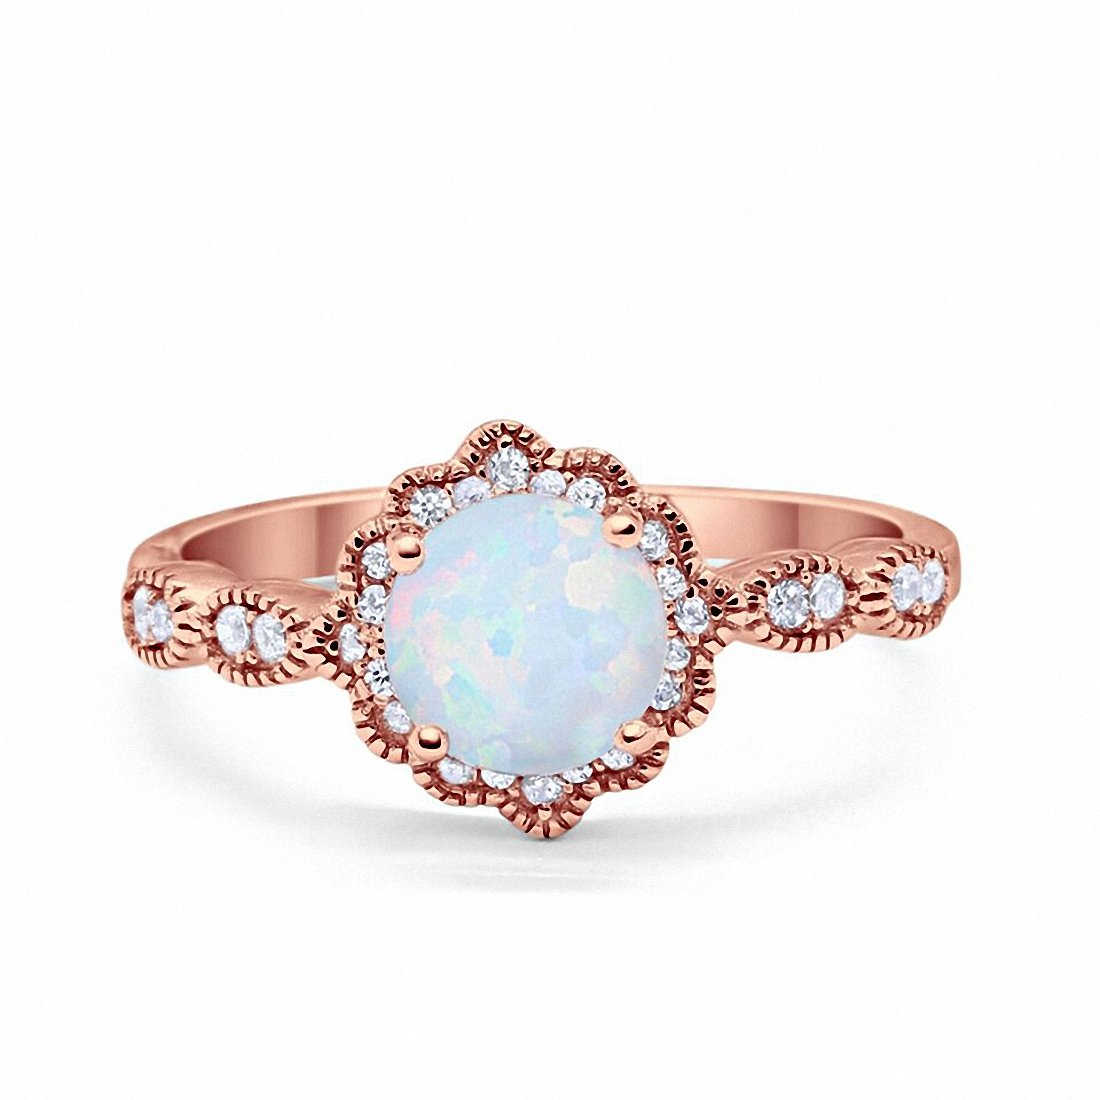 Floral Art Engagement Ring Rose Tone, Lab Created White Opal 925 Sterling Silver